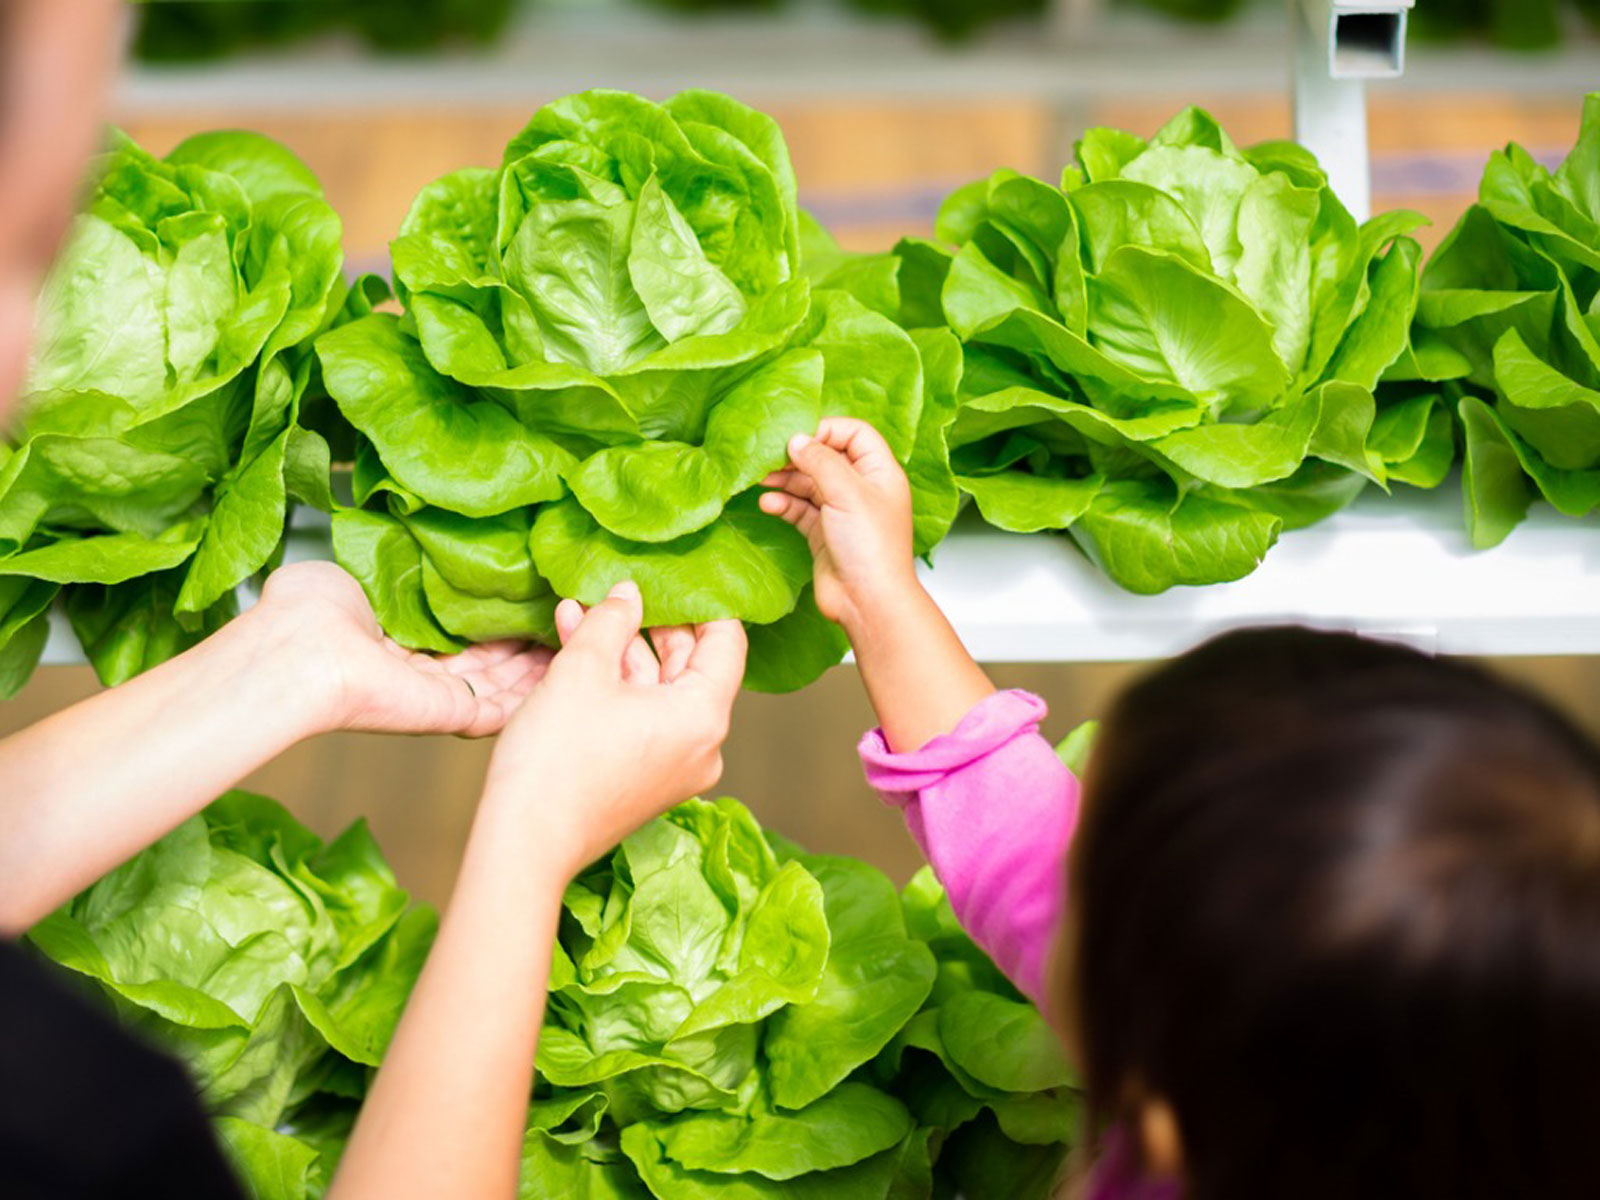 Kids And Hydroponic Farming Growing Food With Hydroponic Farms